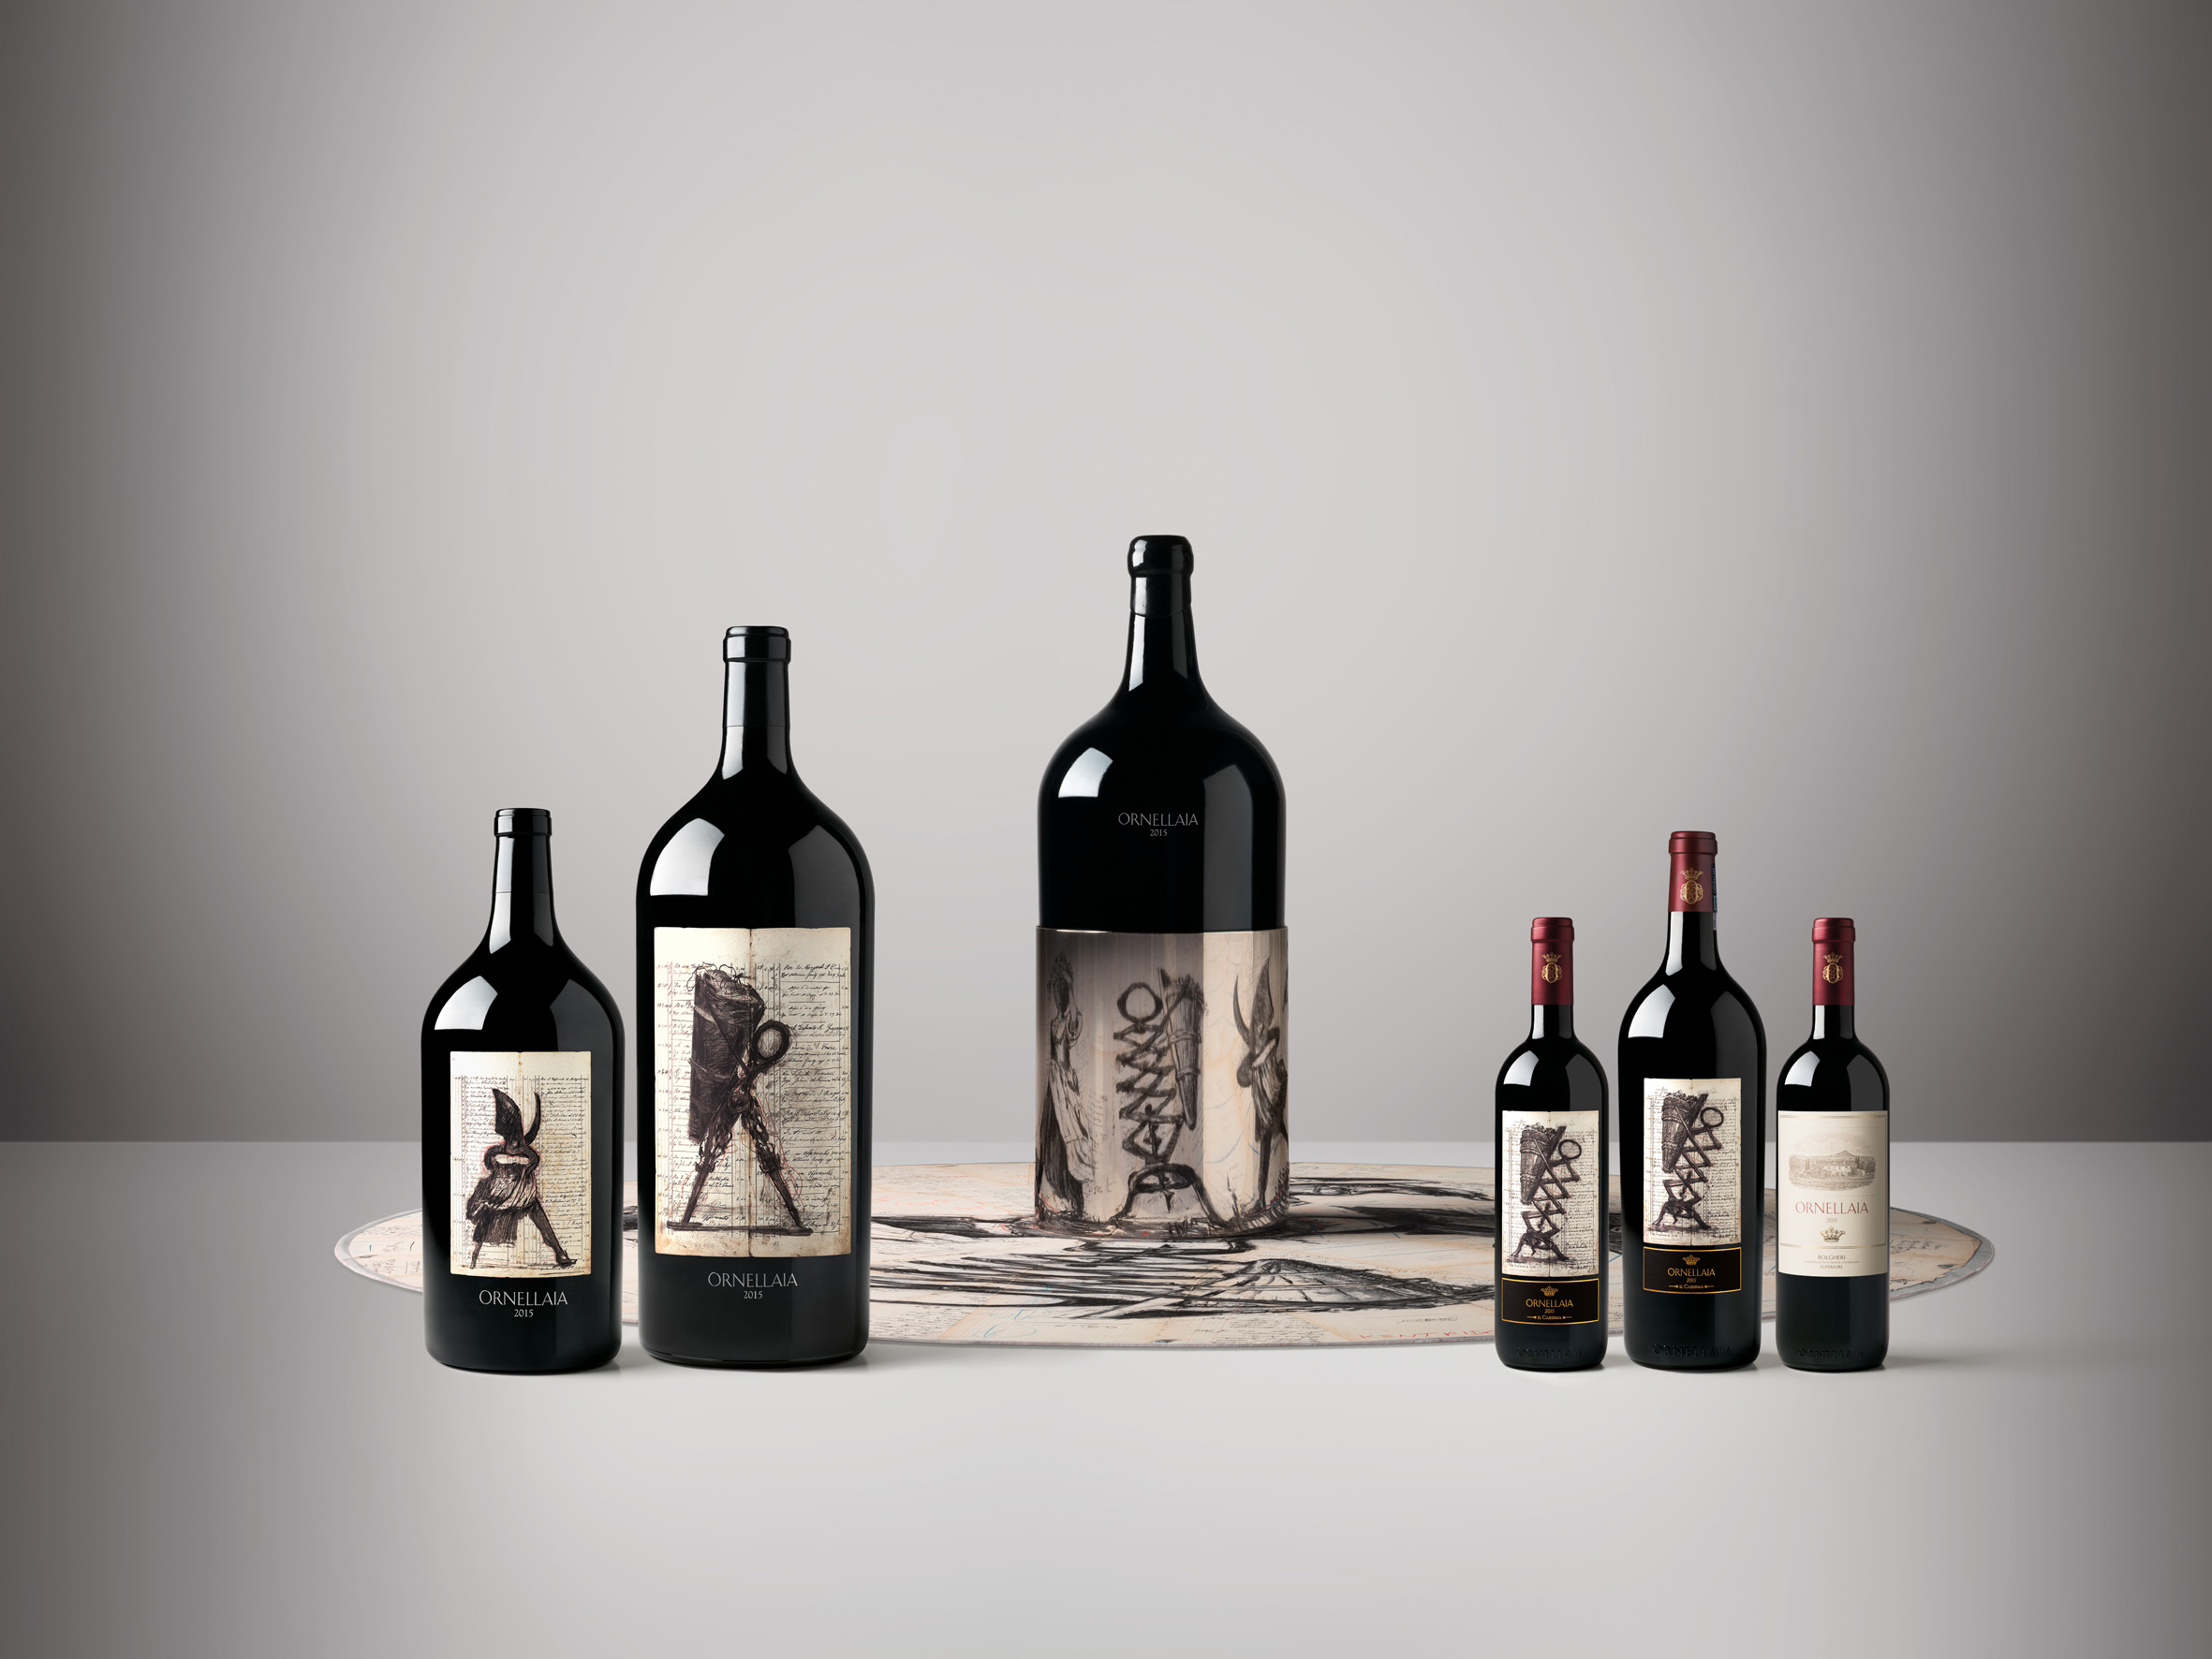 Ornellaia 2015 and Château Mouton Rothschild 2016: William Kentridge creates art labels for iconic wines